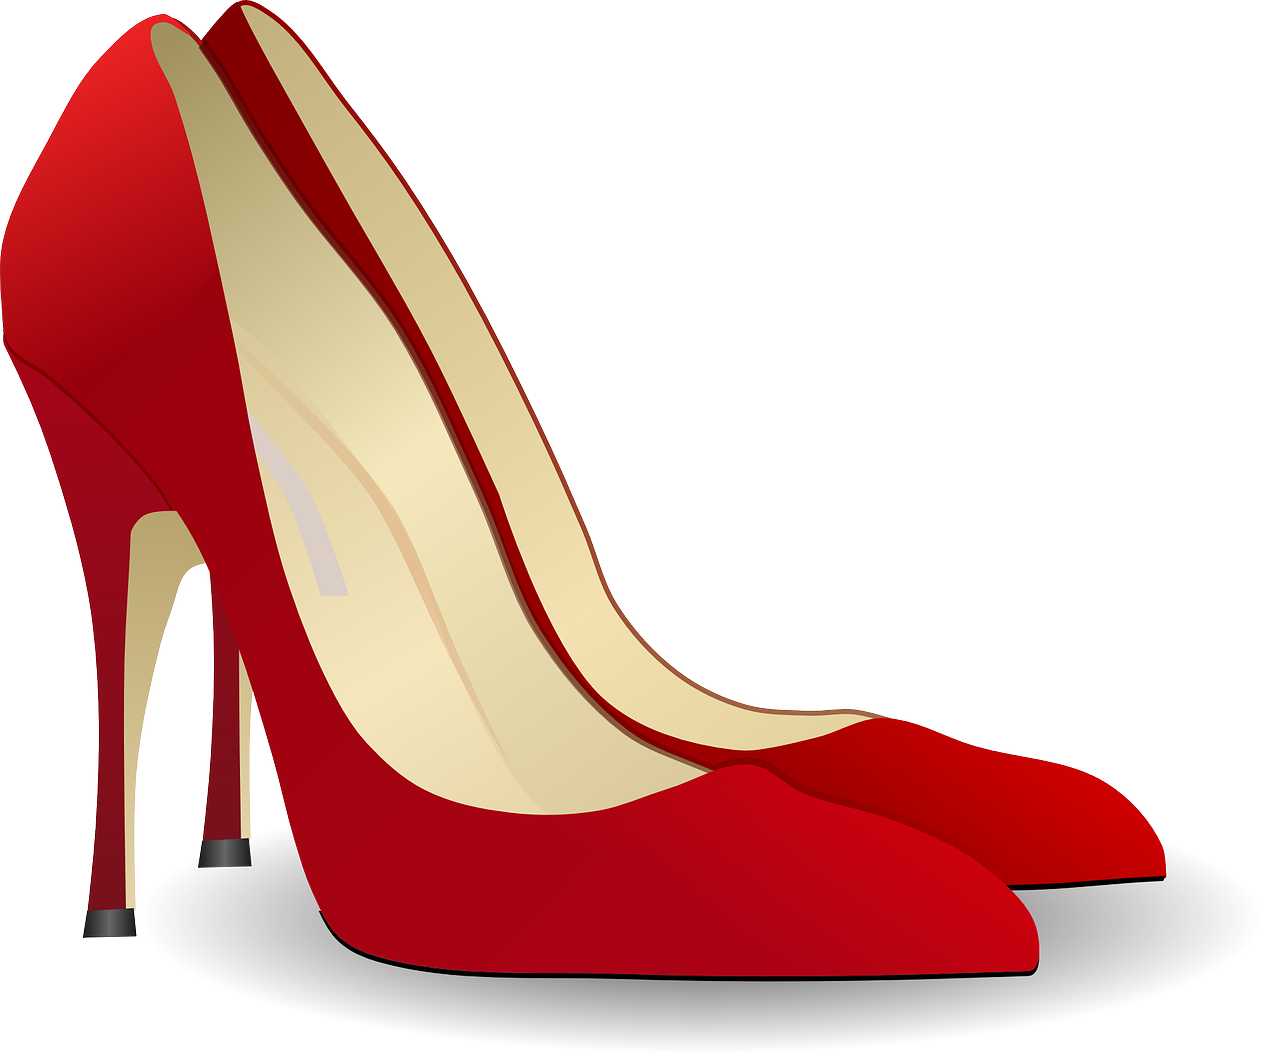 Heels banned in church for preventing Adventists from walking softly in the sanctuary